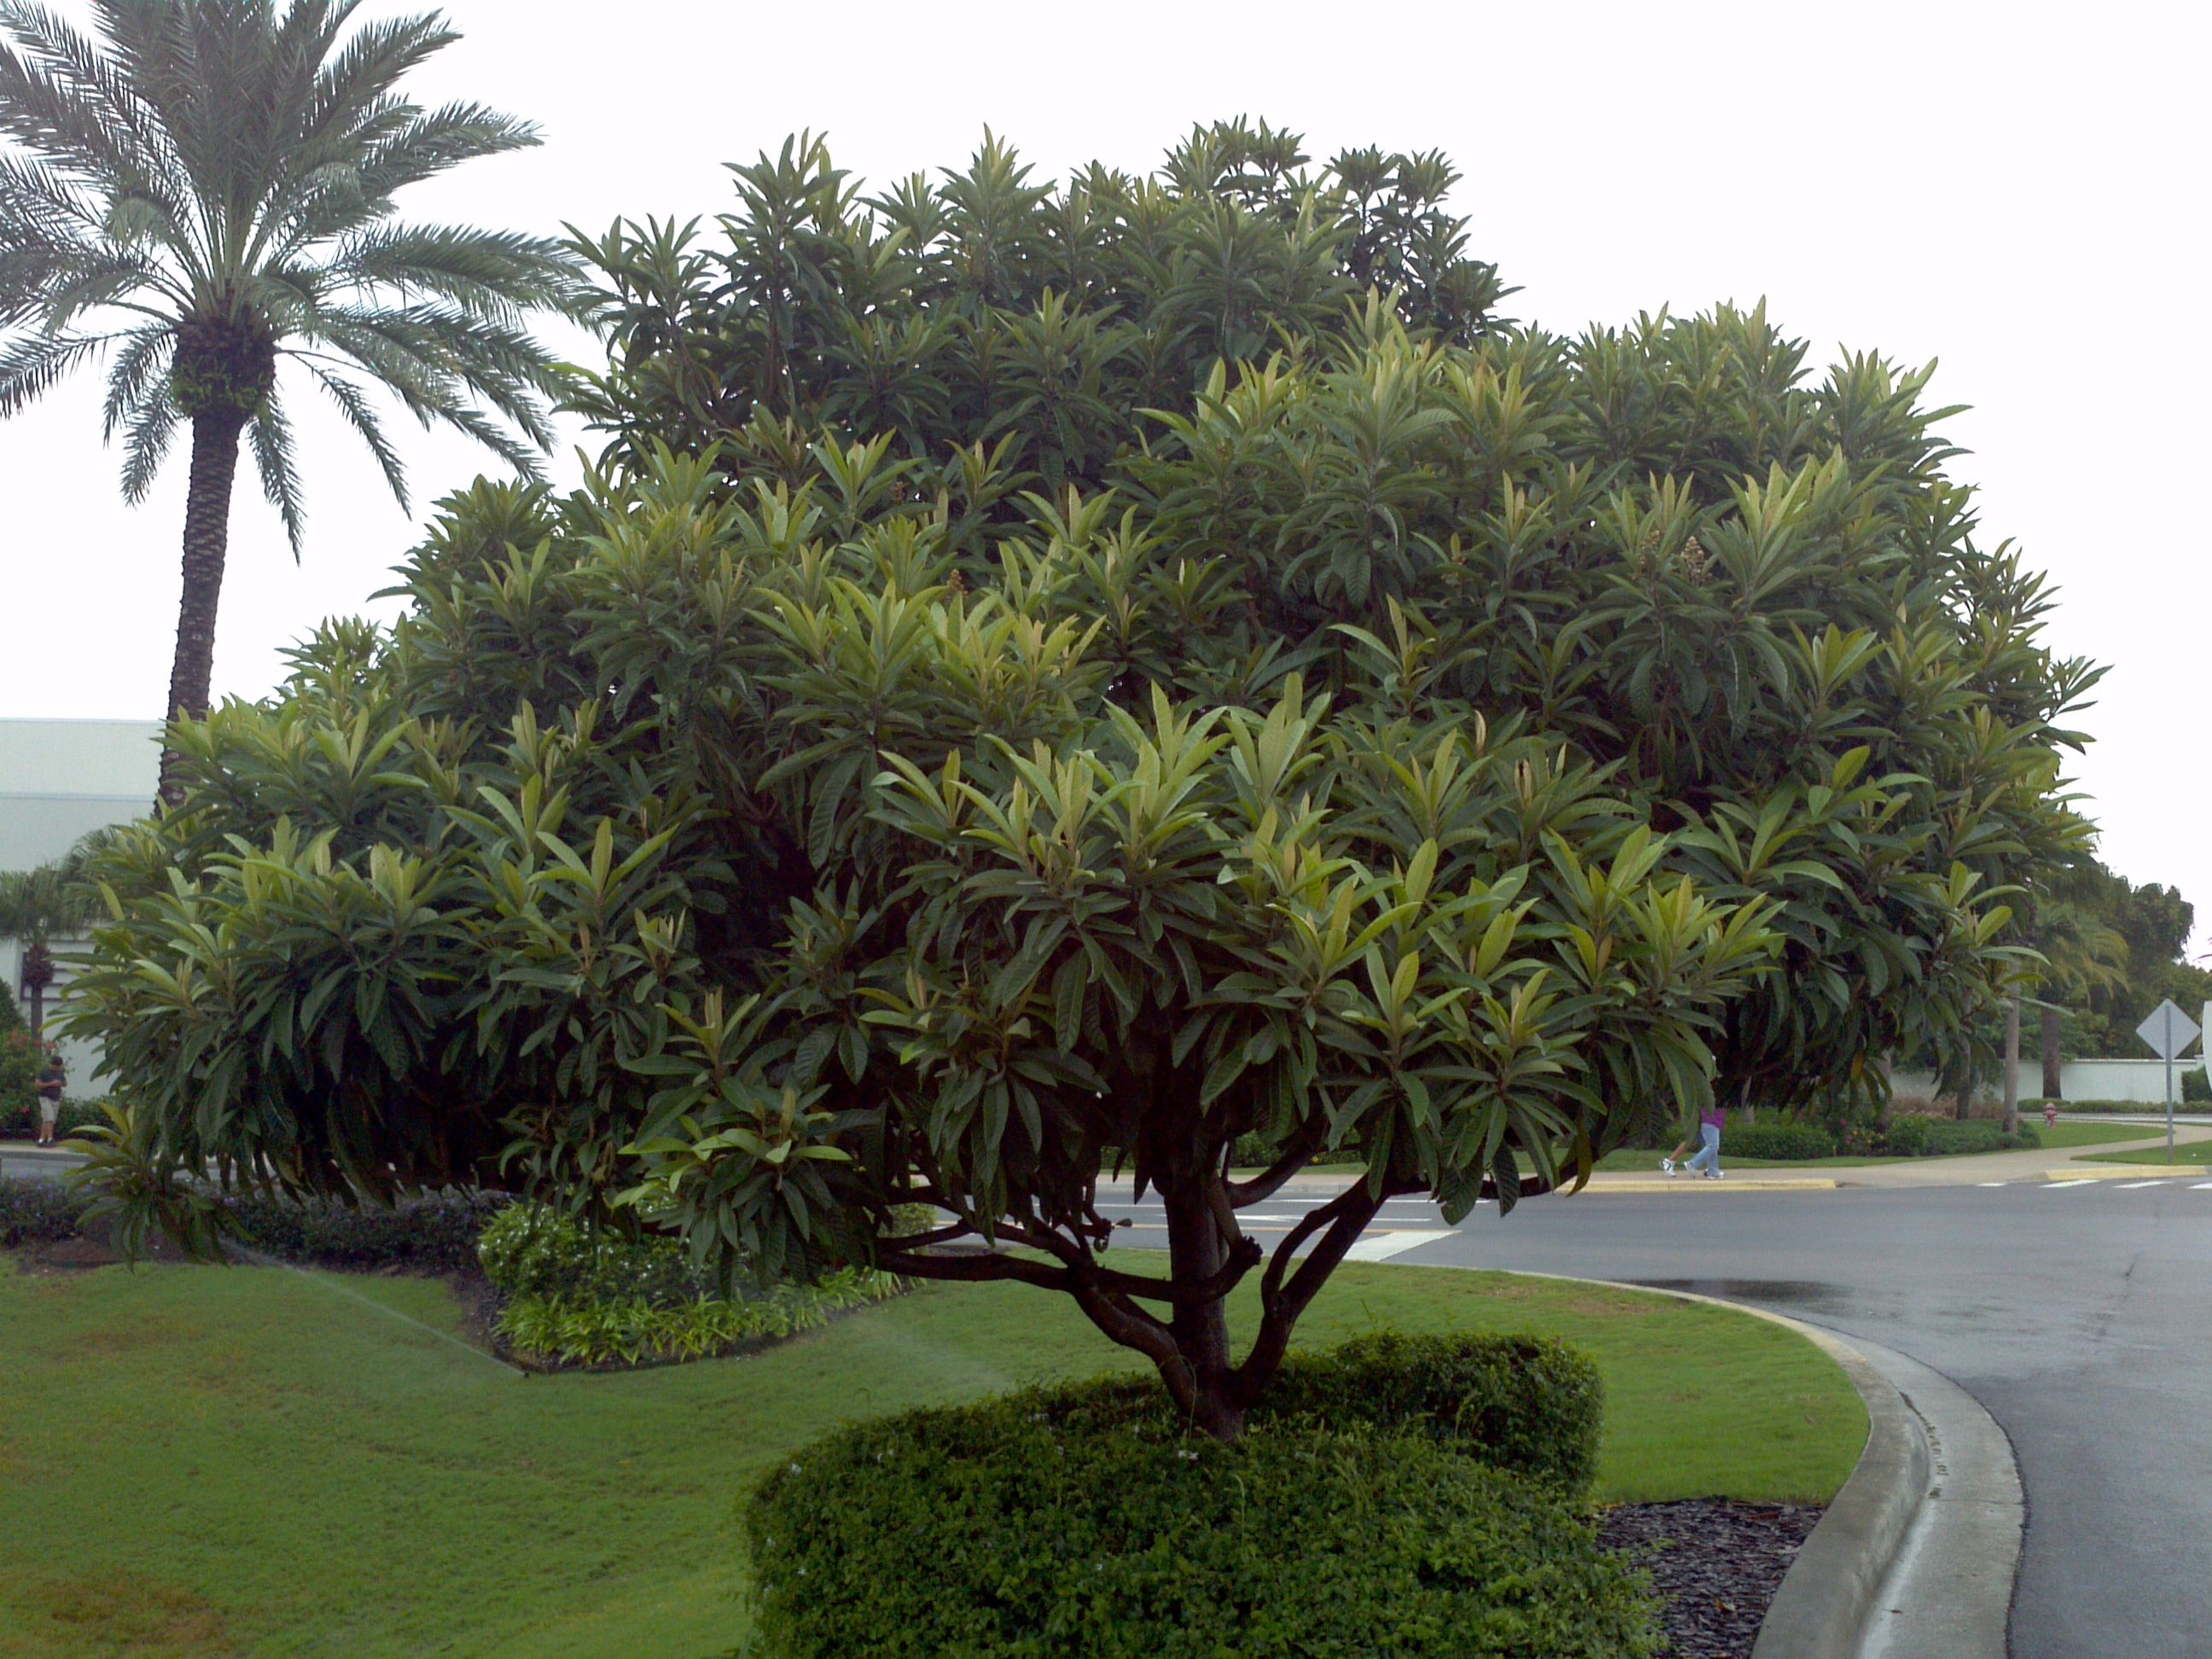 Quot Loquat Tree Quot My Grandparents Had One In Their Backyard I